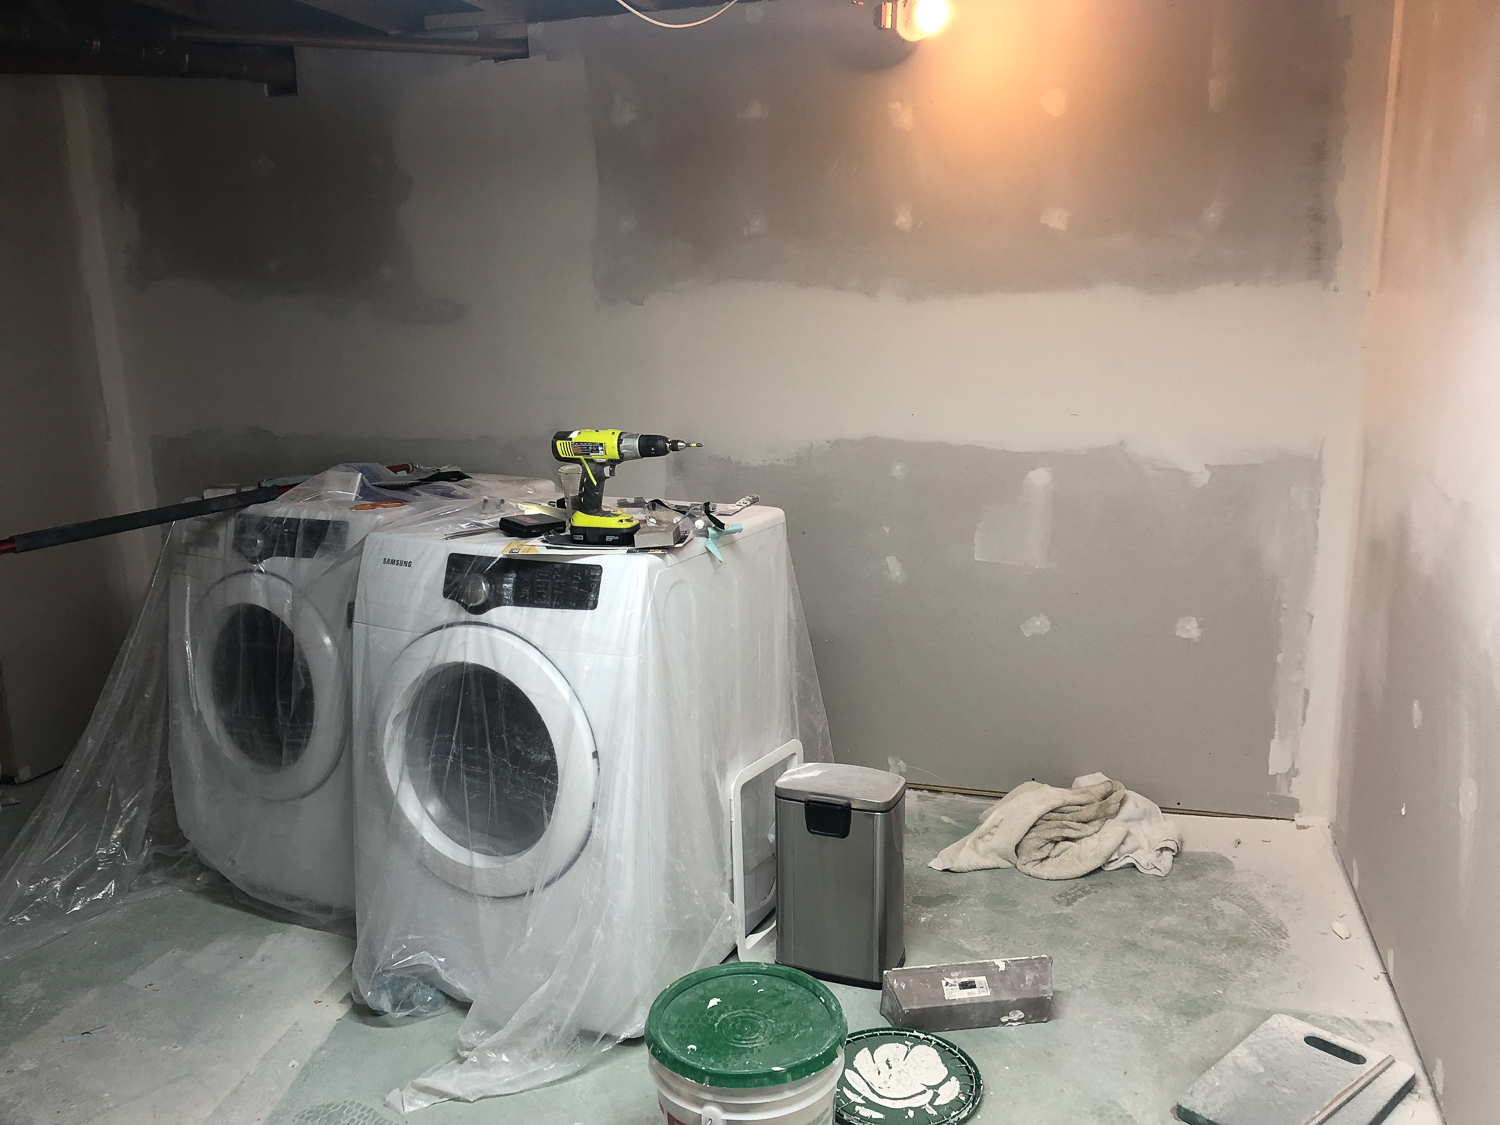 Had we ever tackled drywall before? Nope! Is it worth every penny to have someone else do it? Yup! Would we do it again? Absolutely not. BUT! We are happy we at least know how now, and can fully appreciate it when we do pay someone else to do it in the future.